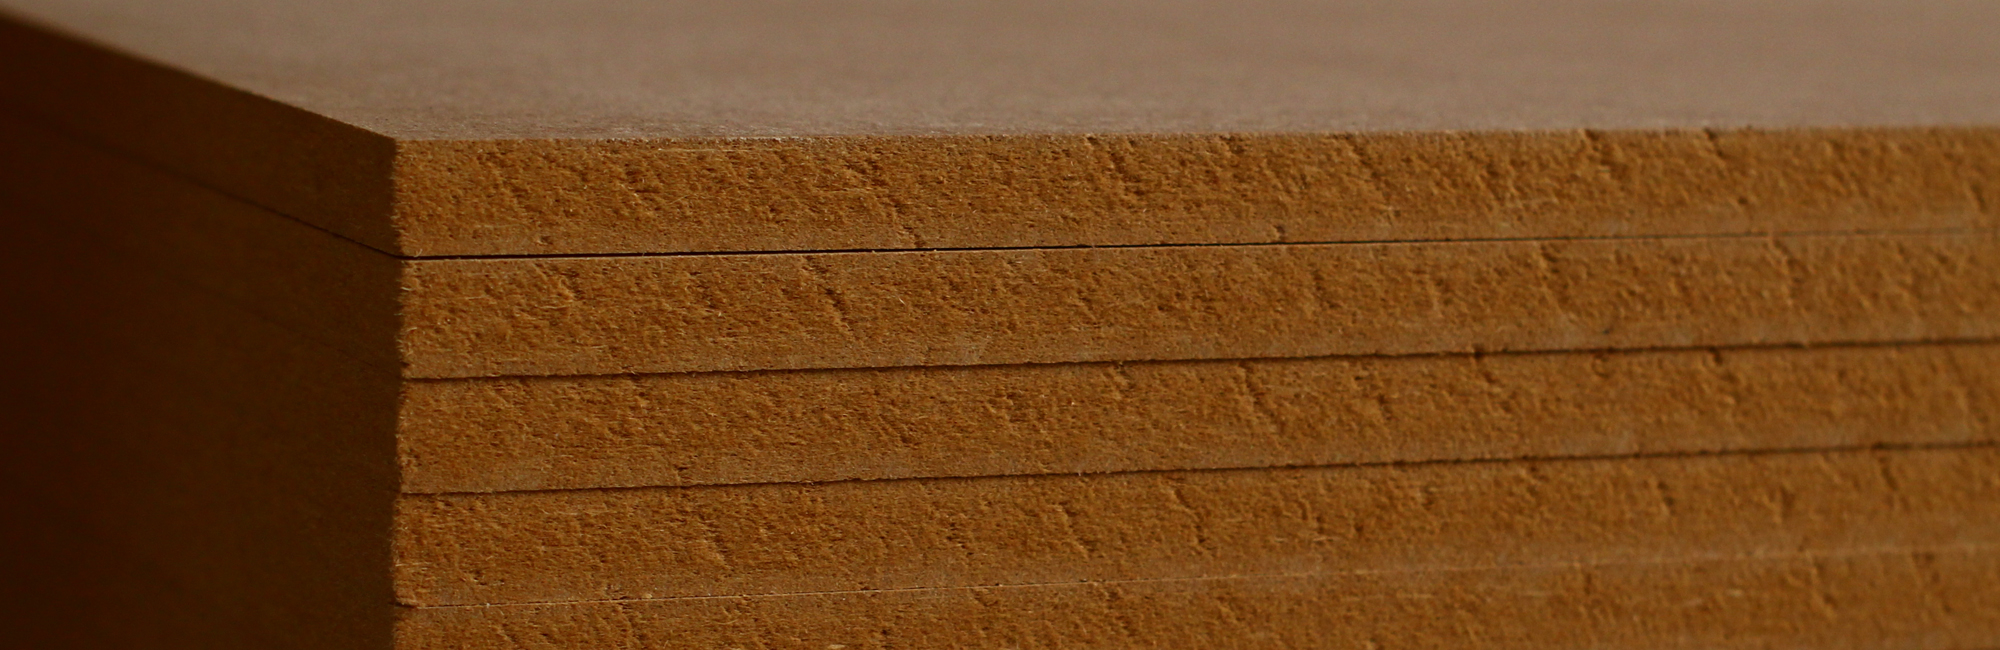 MDF, affordable mdf, what is mdf, mdf chester